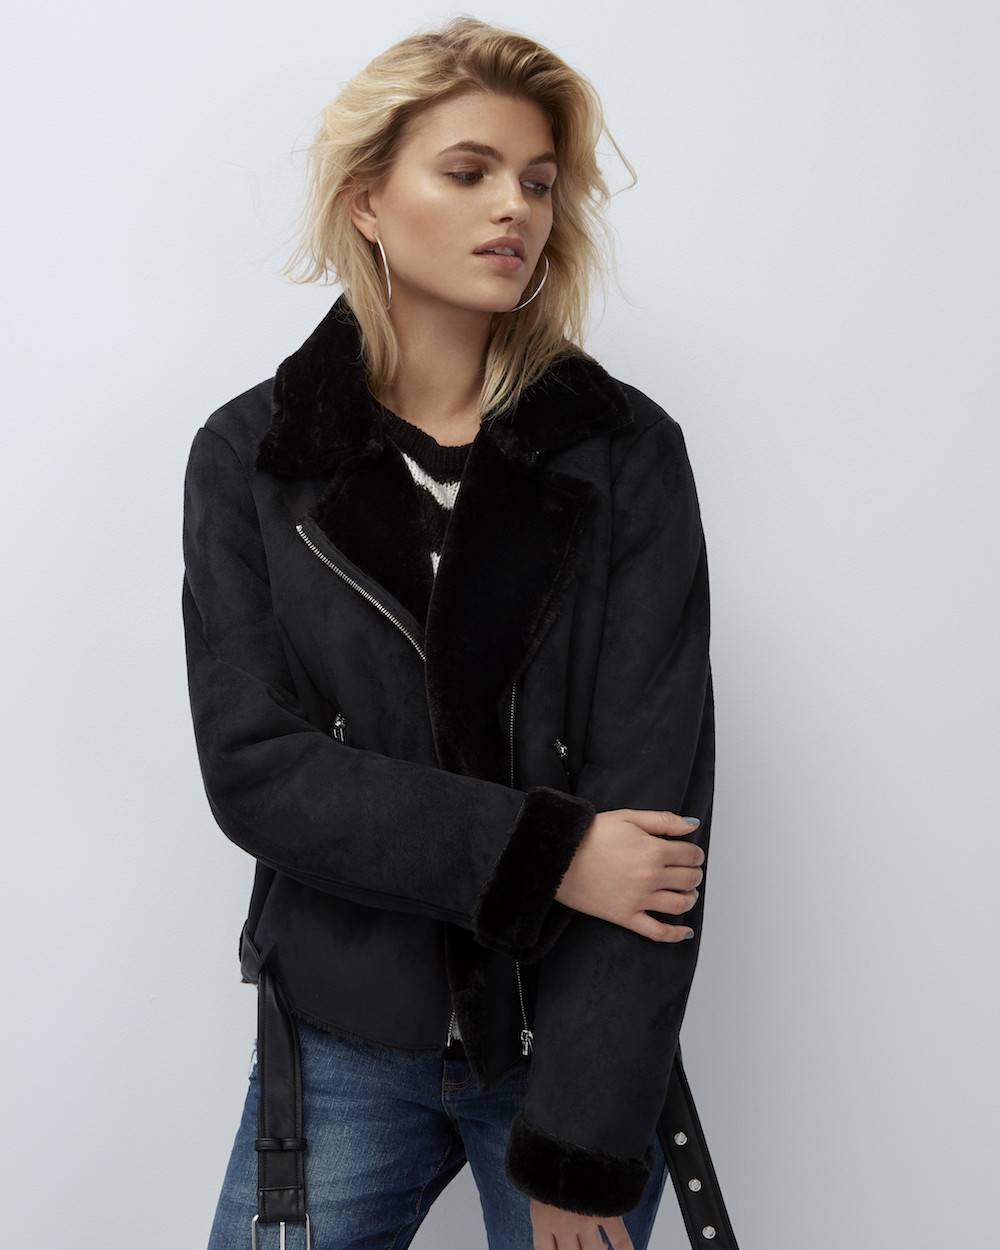 335003_21.04.2017_Primark_AW_New_Value_Womens_JW_RBO_D8_SUEDEBIKER_010